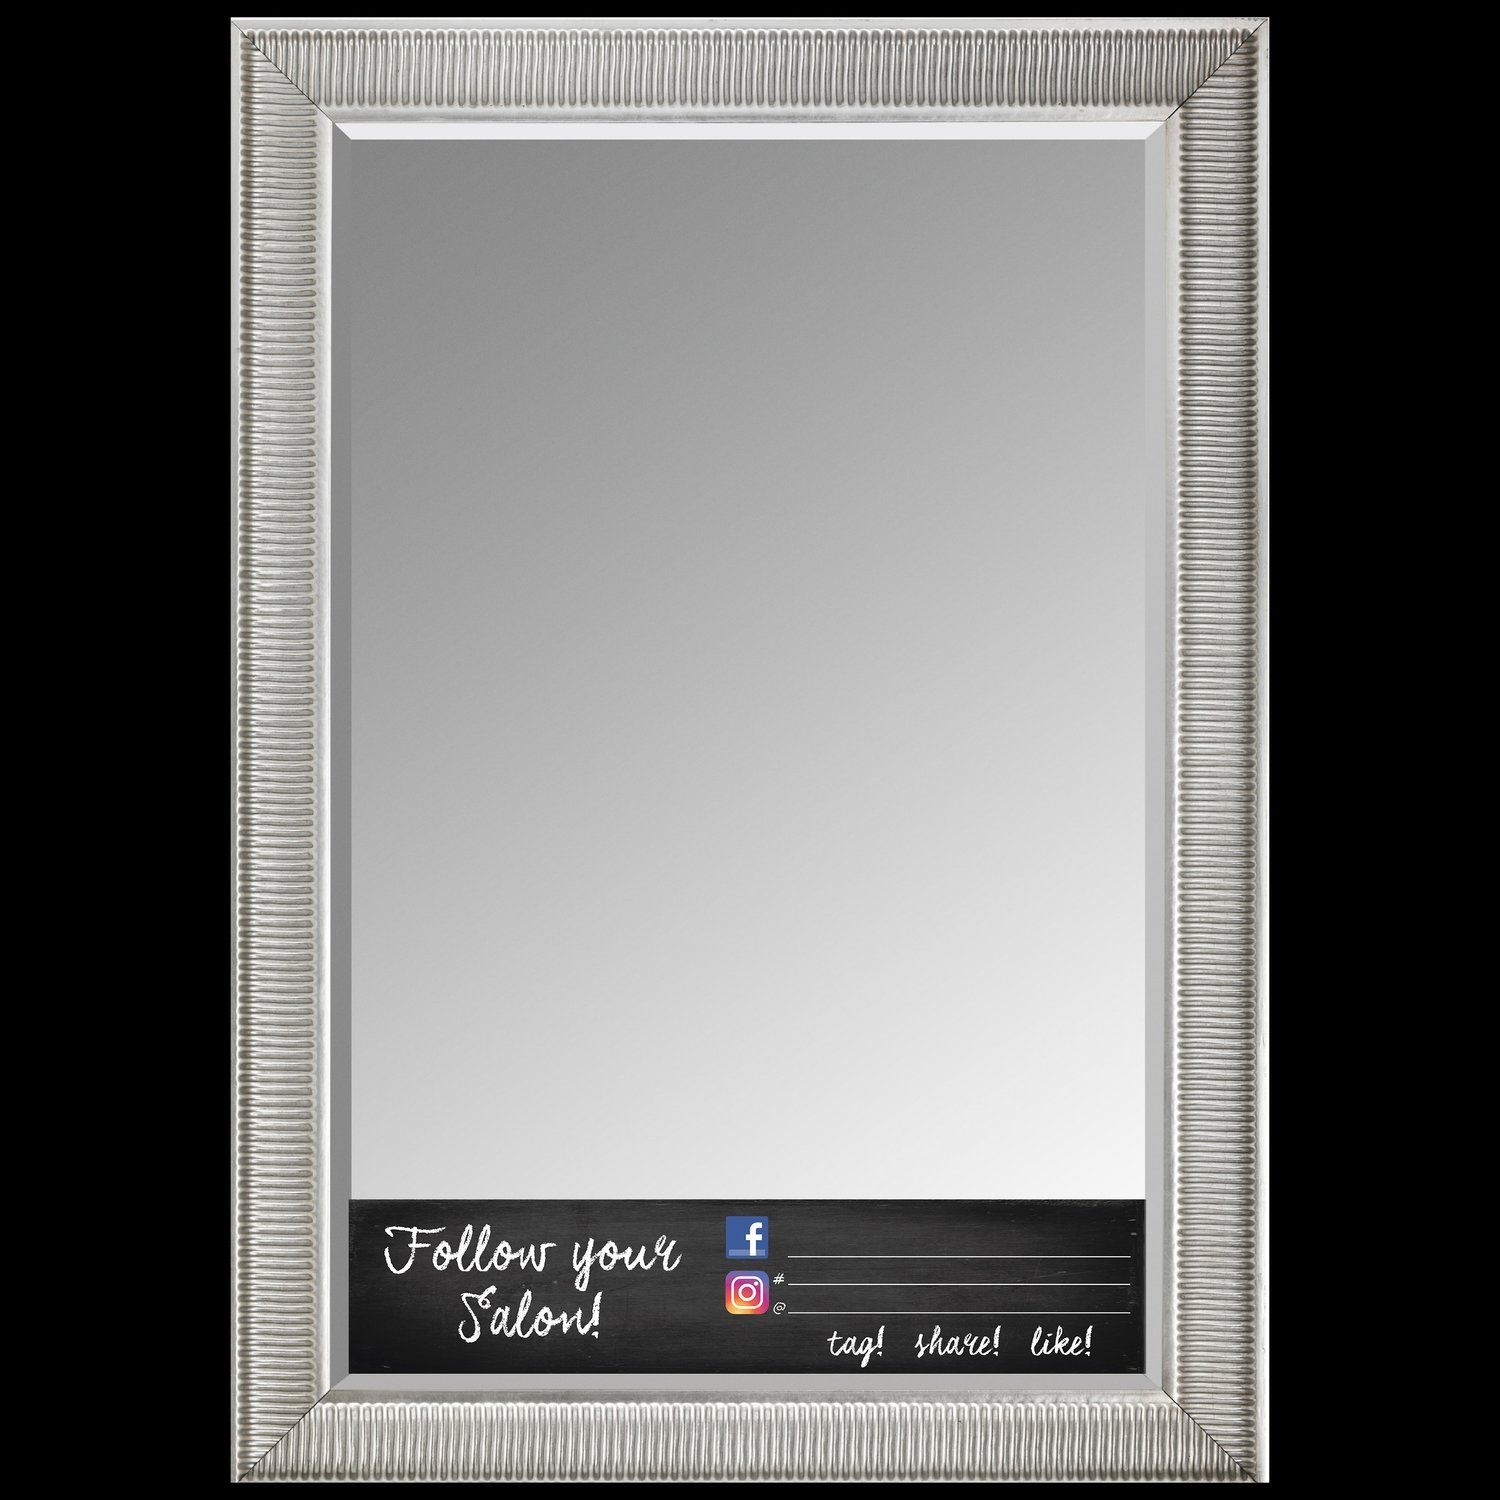 SALON OR STYLIST SOCIAL MEDIA MIRROR CLING-FULL LENGTH-24x7